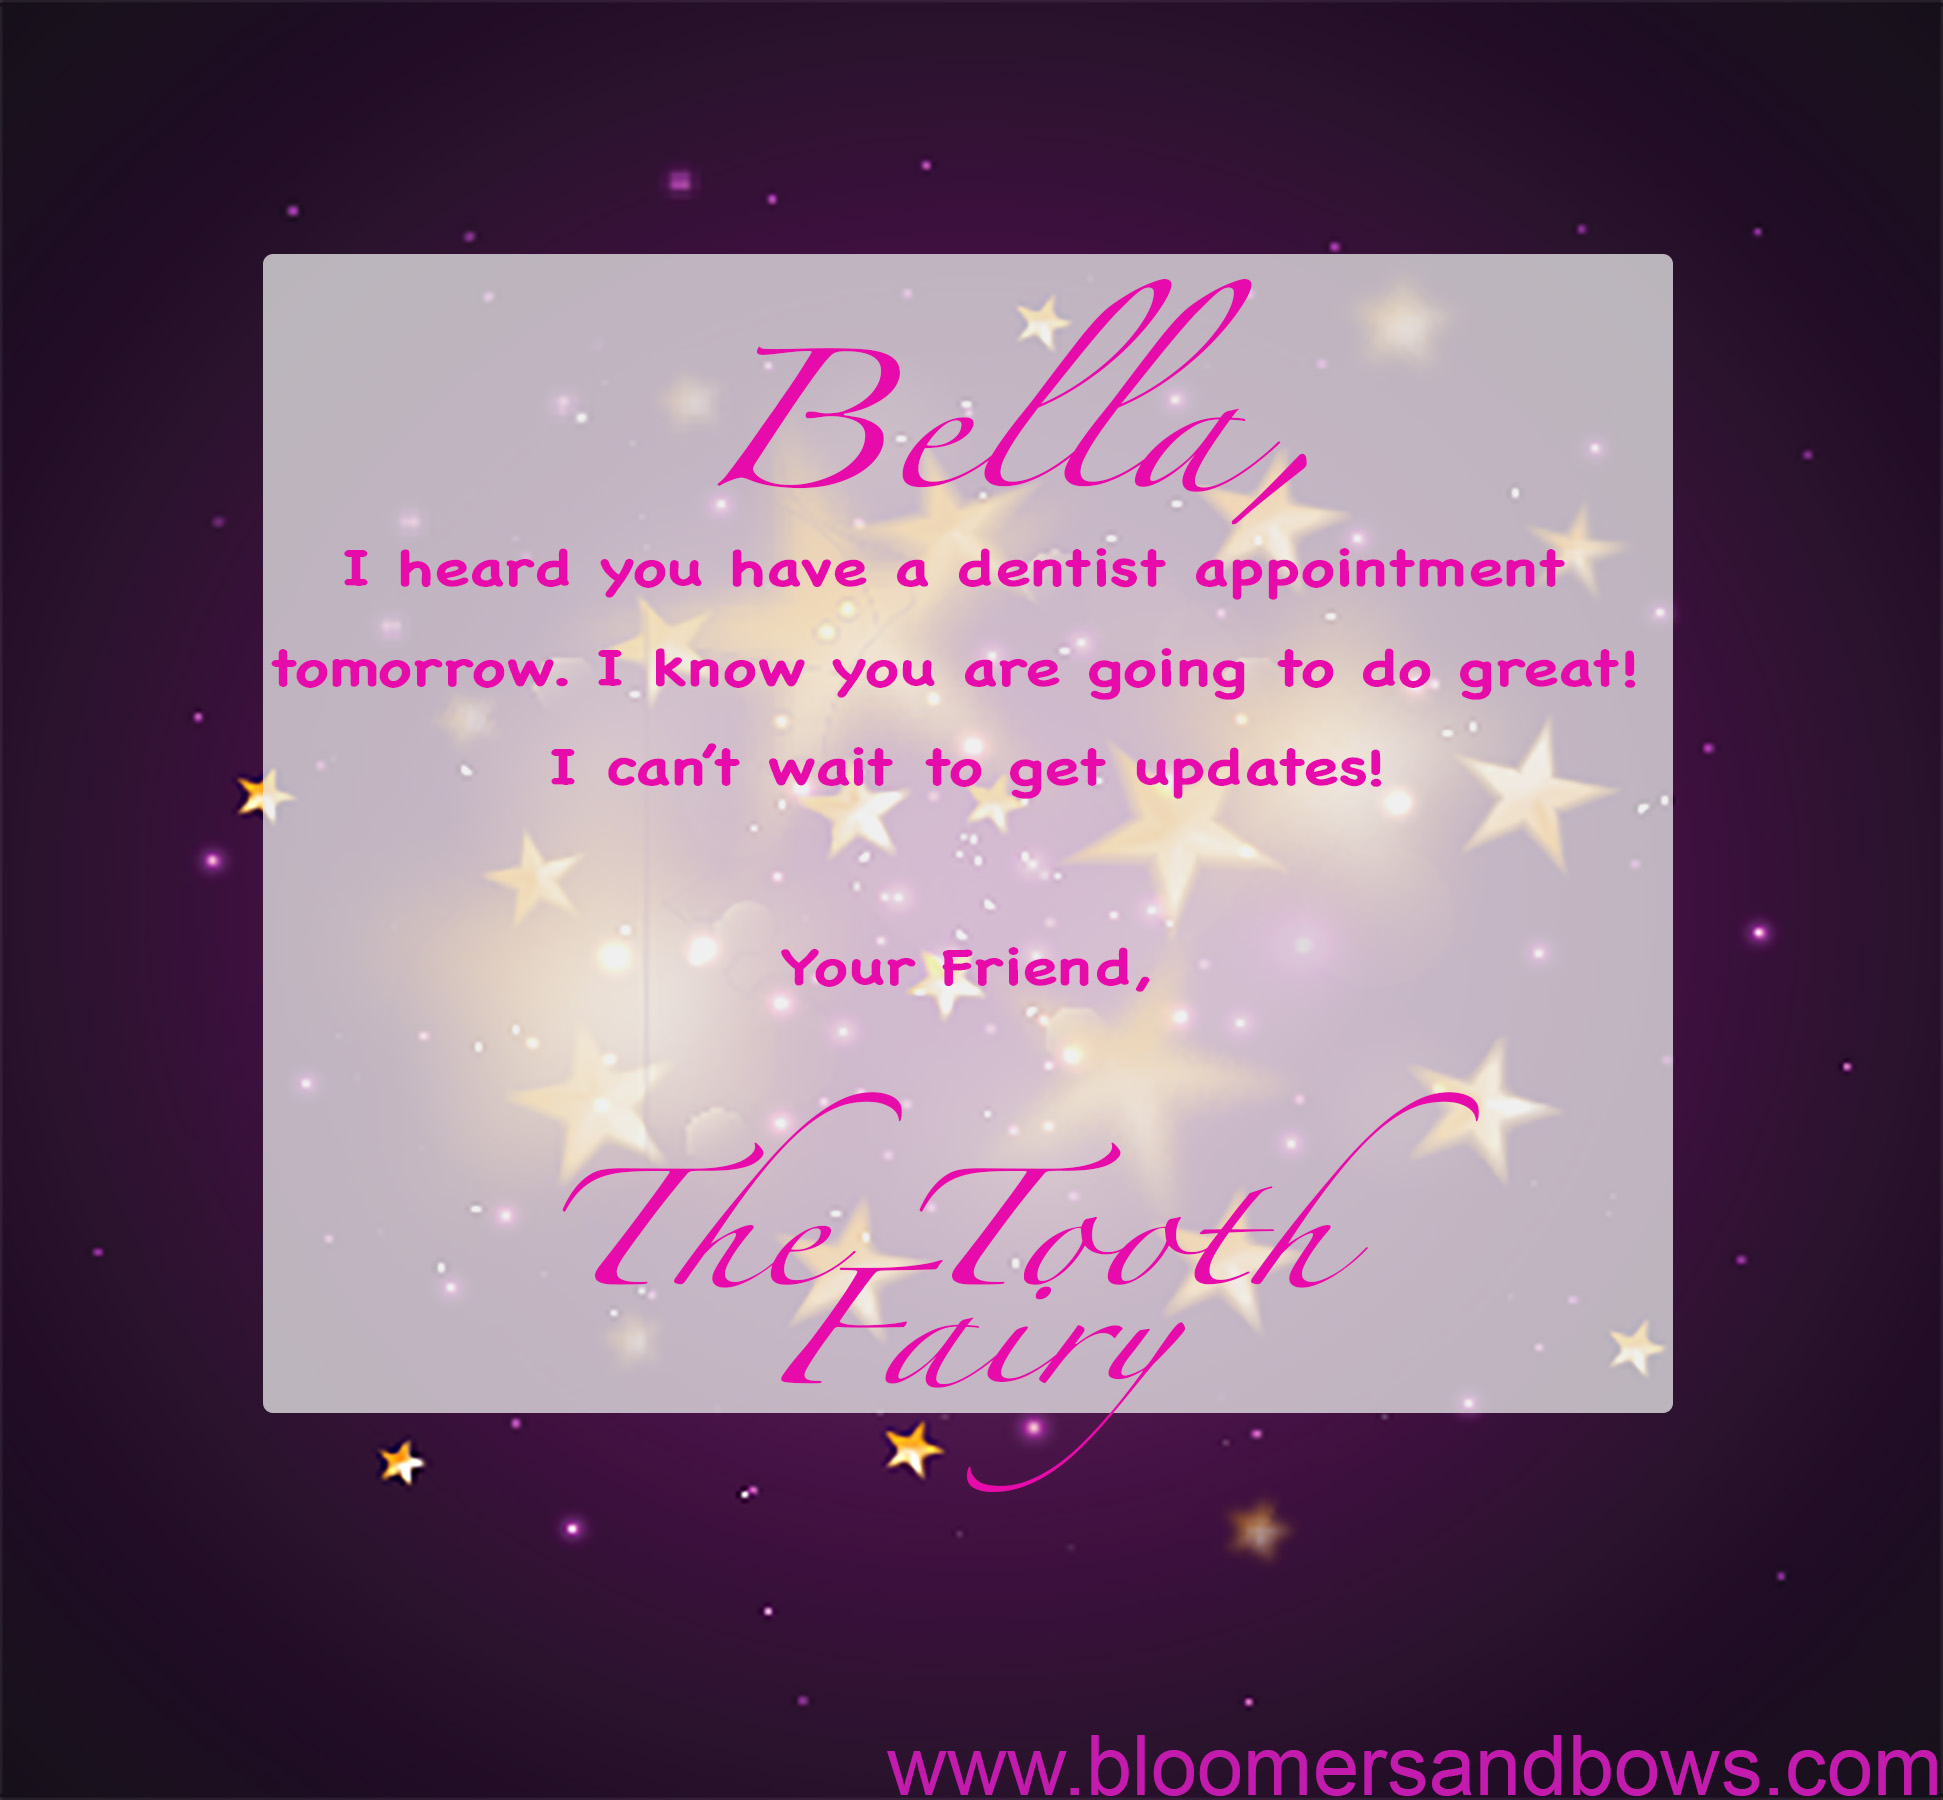 A letter from the Tooth Fairy | Bloomers and Bows | Most clever ideas from the Tooth Fairy